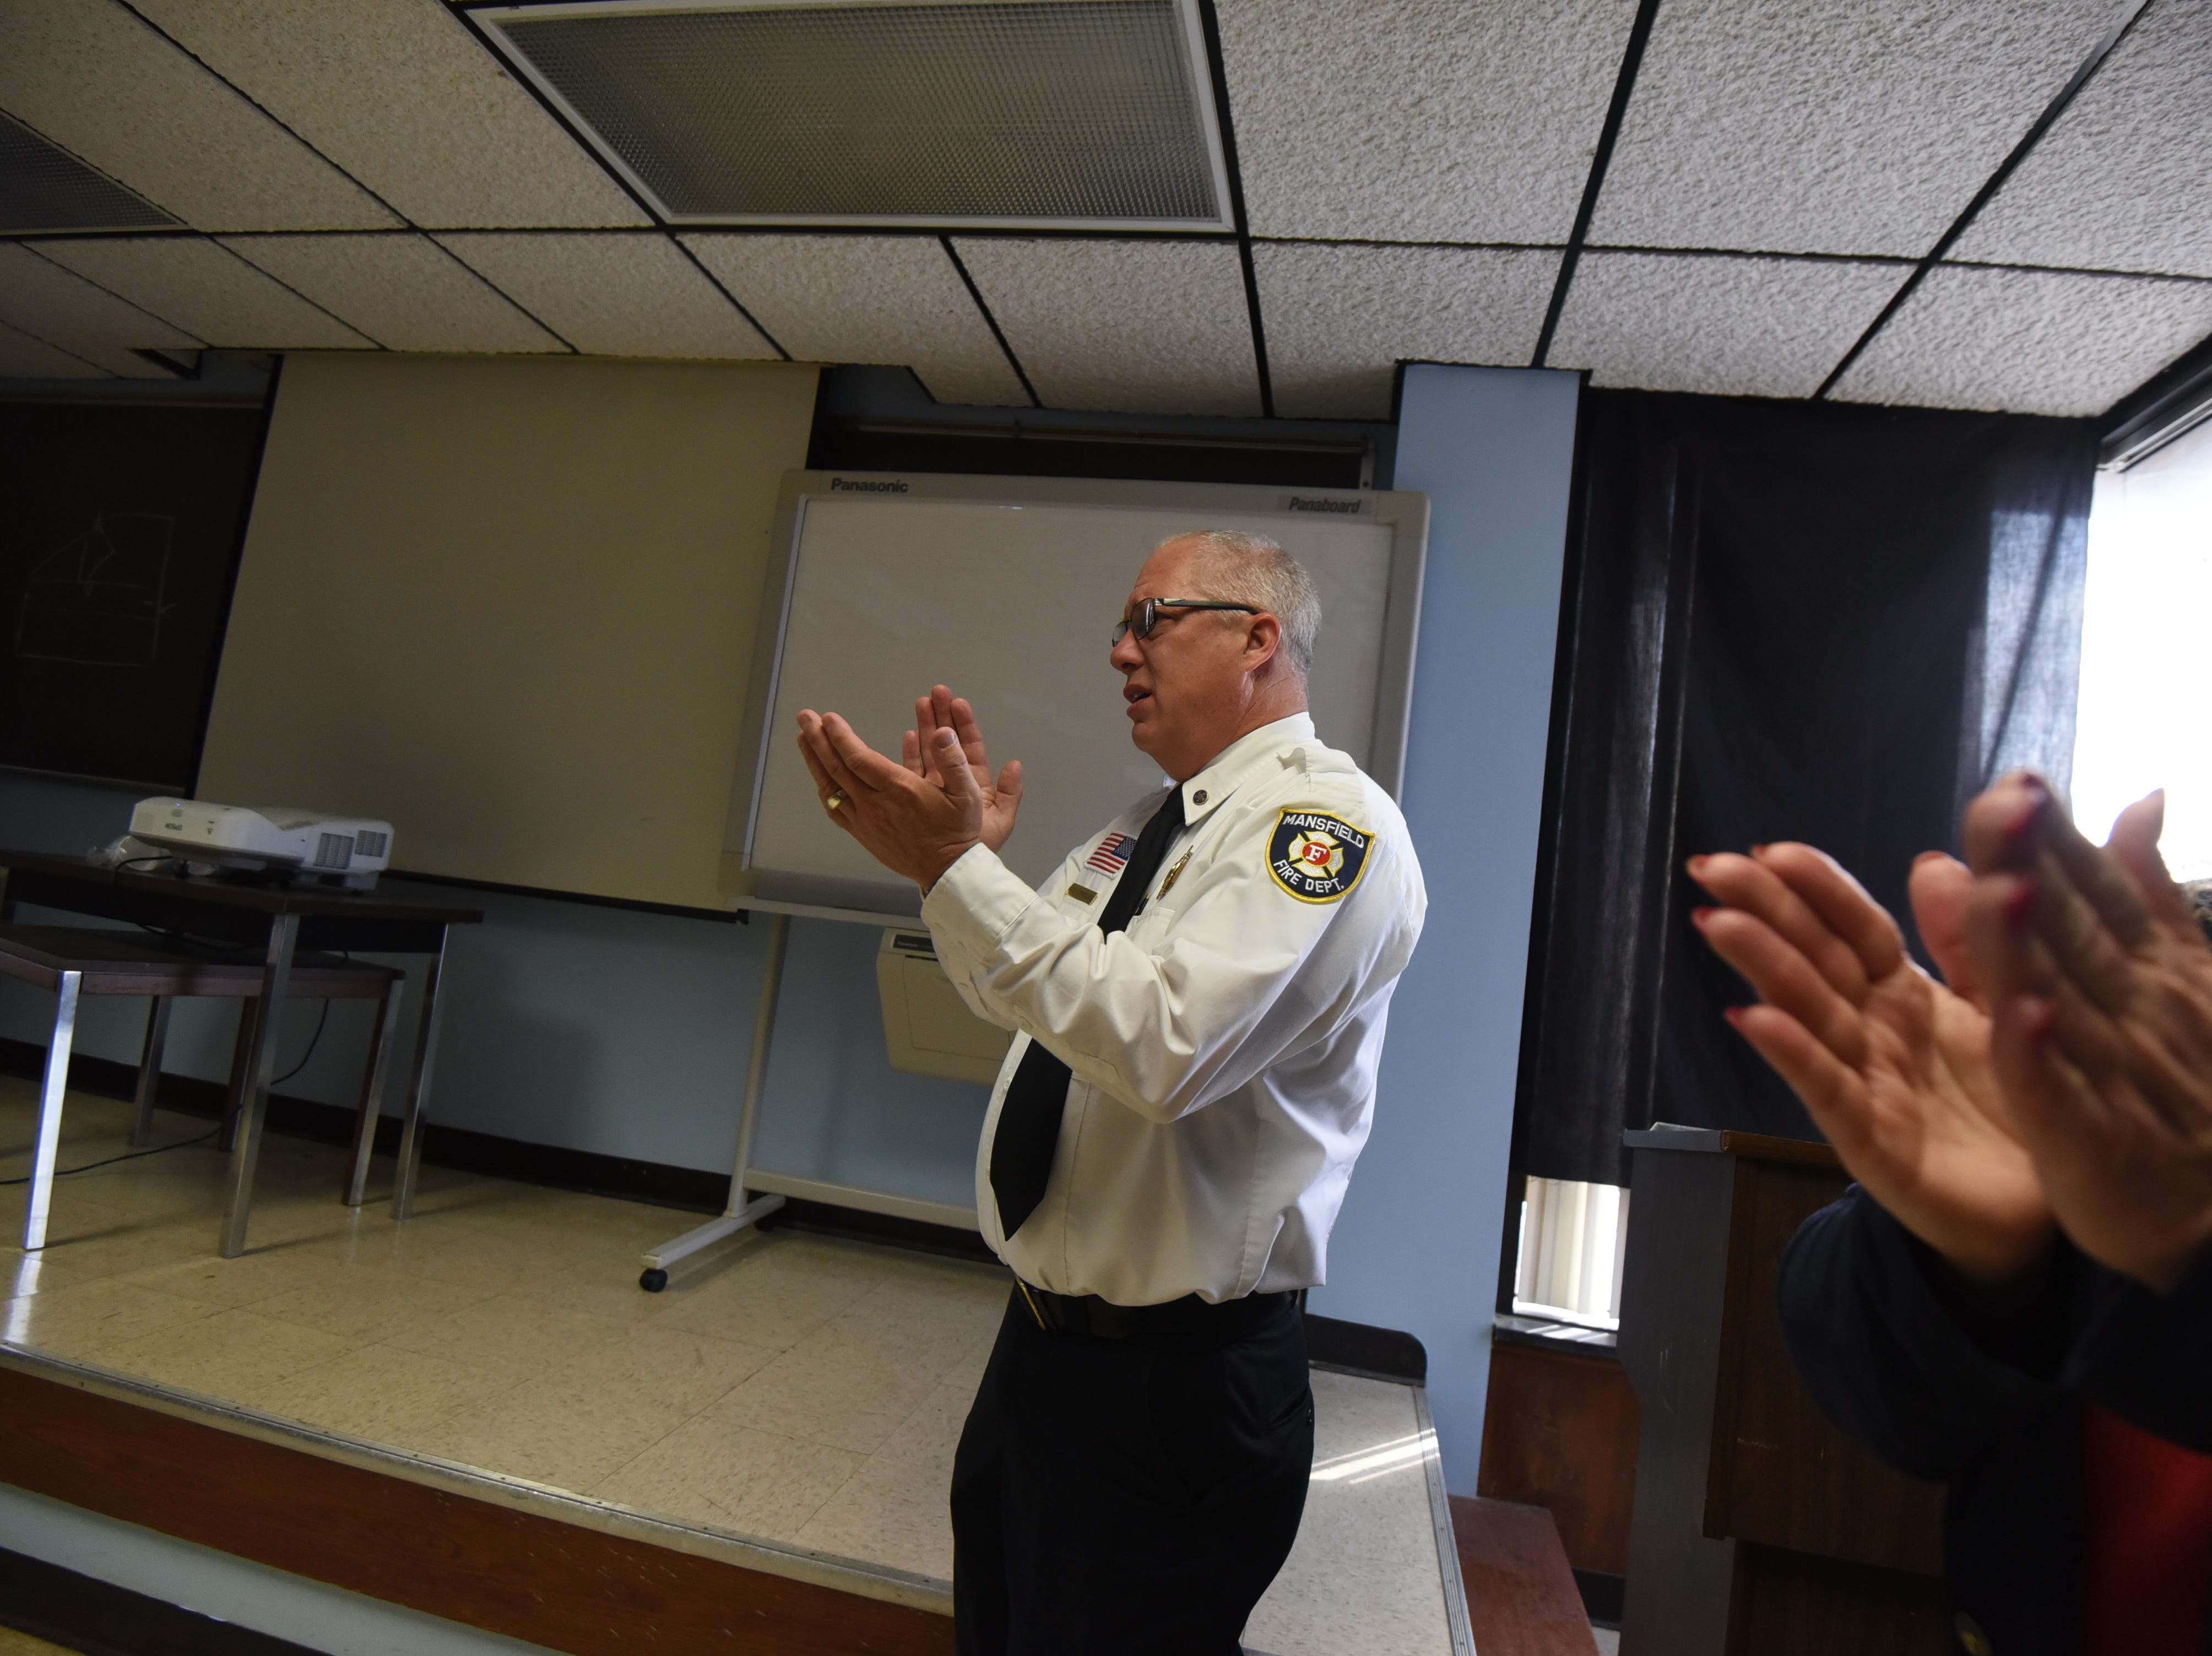 Images during a ceremony for the promotion of Joe Lucas to captain, and Michael Lifer to lieutenant.  Joshua Staats was sworn in, and Capt. George Rippey spoke on his last day before his retirement.